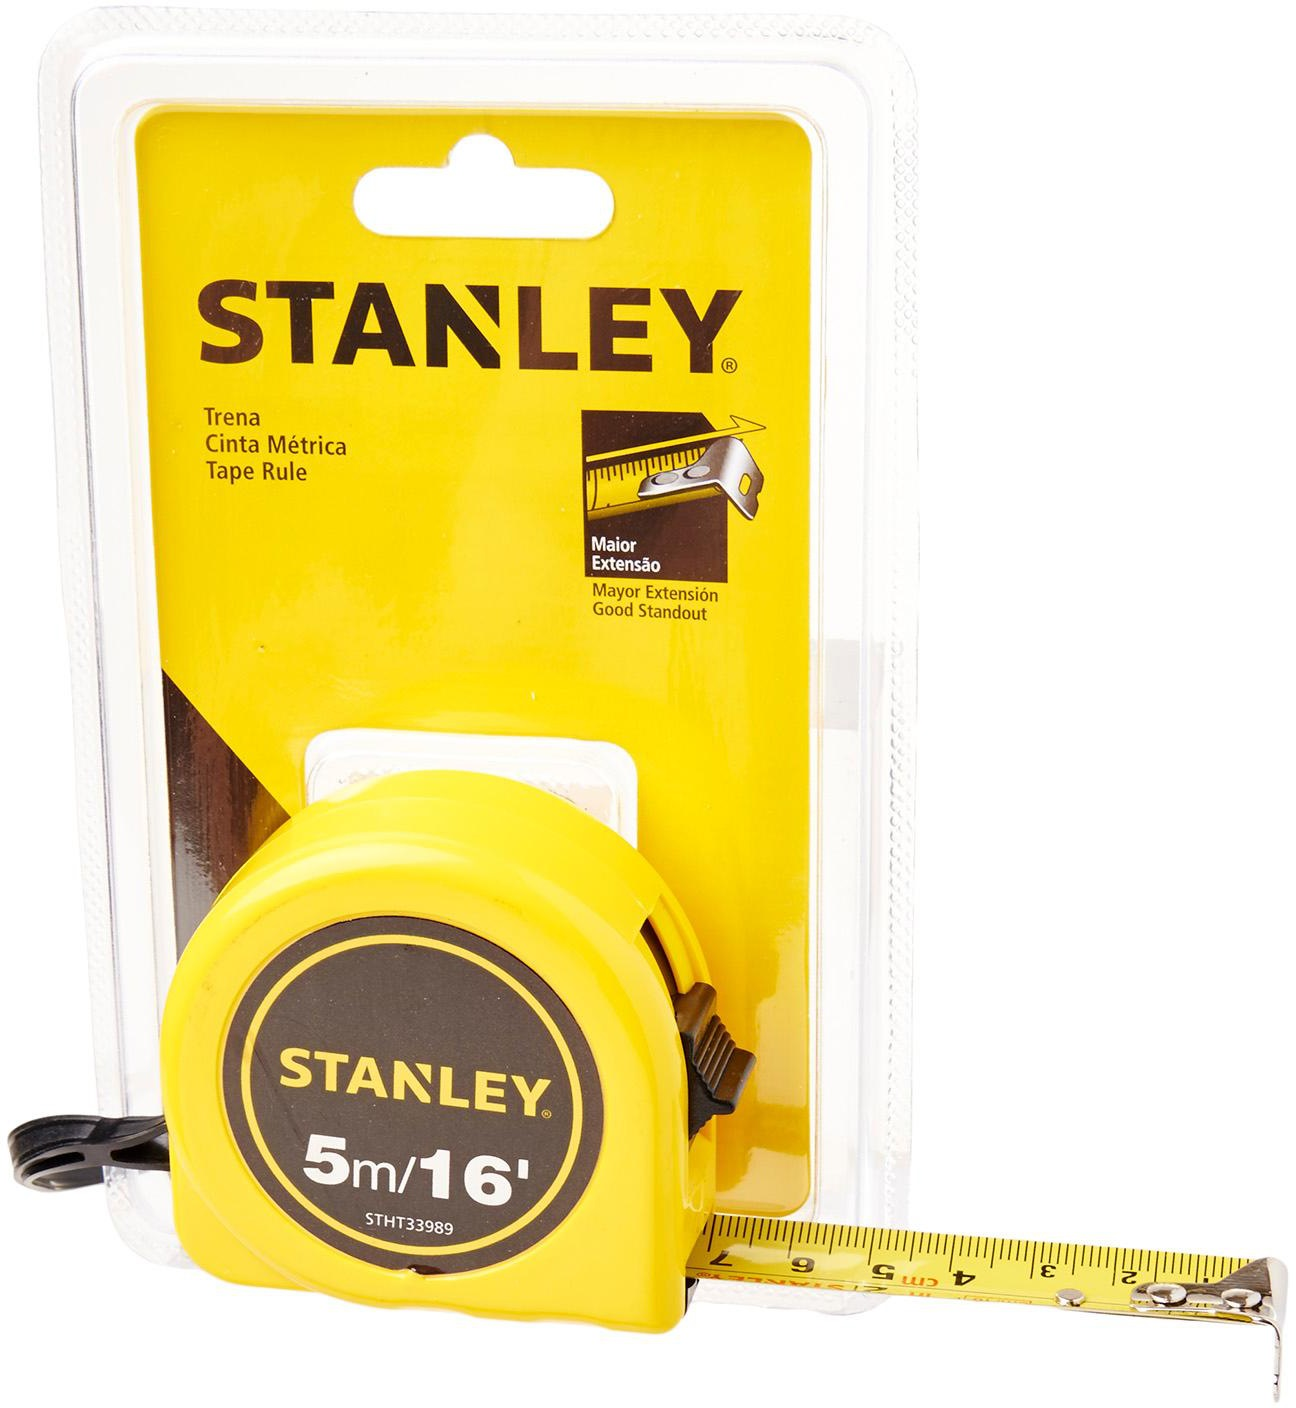 Stanley Basic Tape 5m/16ft 33989